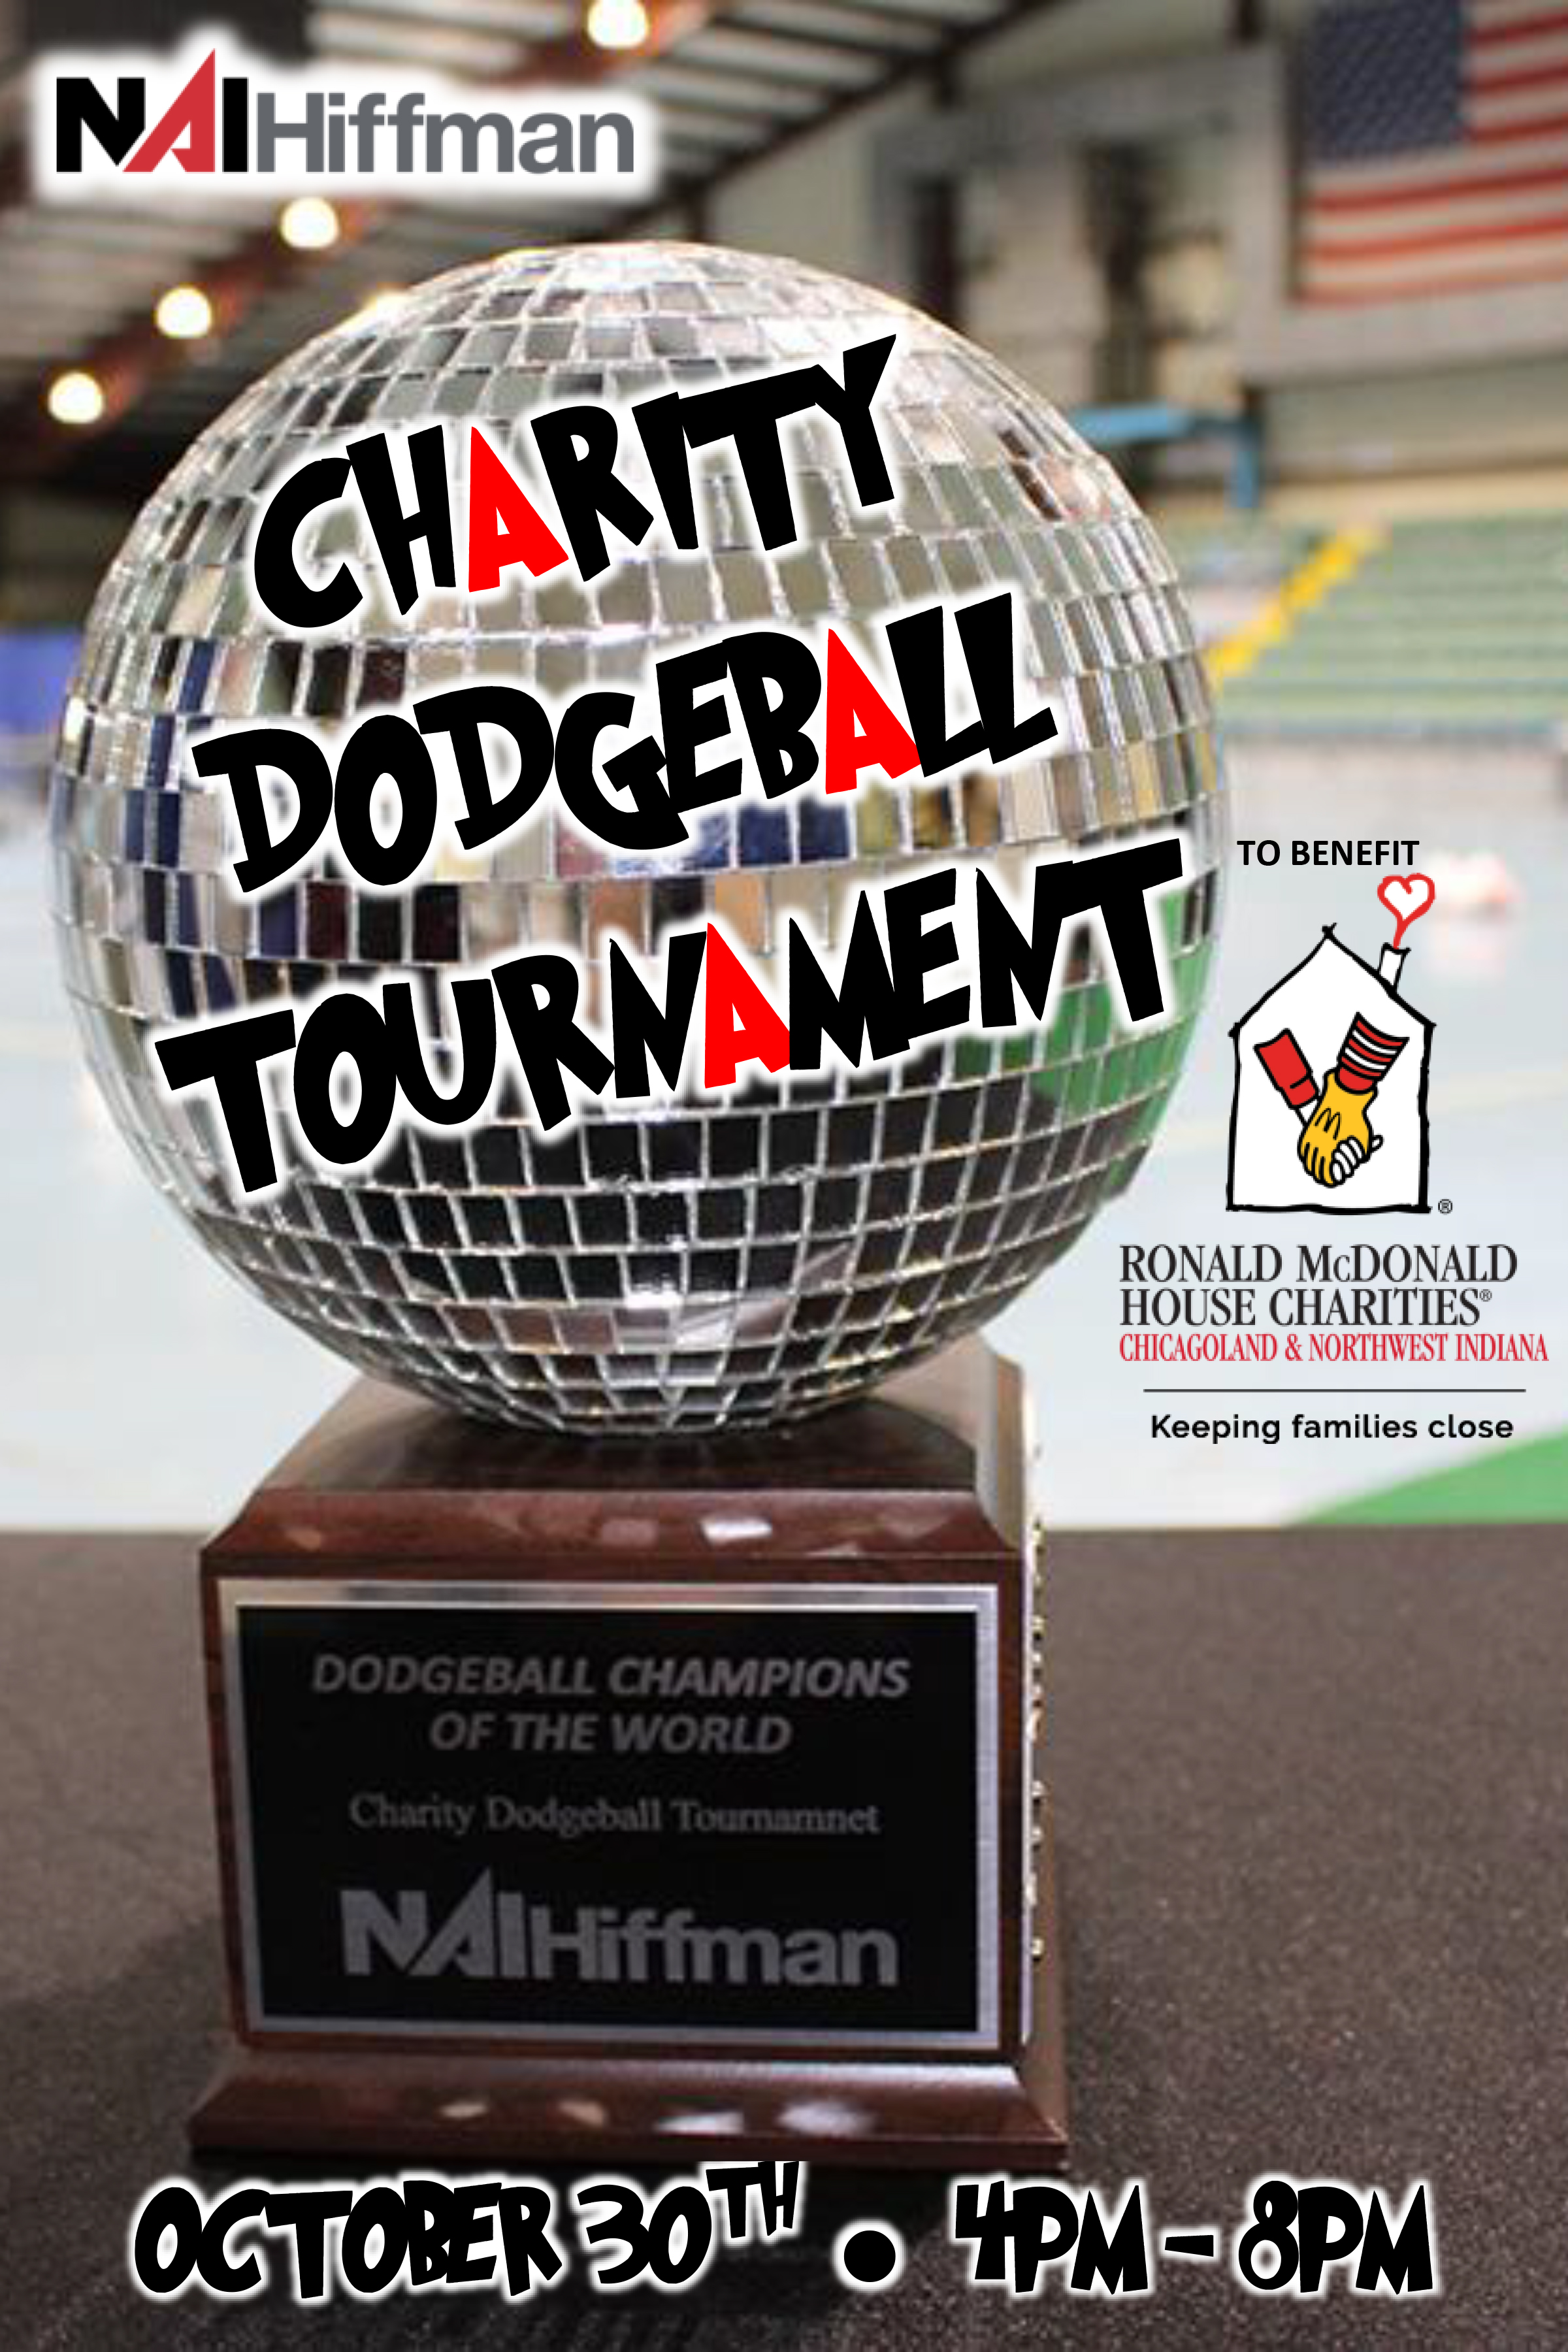 Dodgeball Tournament for Ronald McDonald House Charities at the Odeum Expo Center